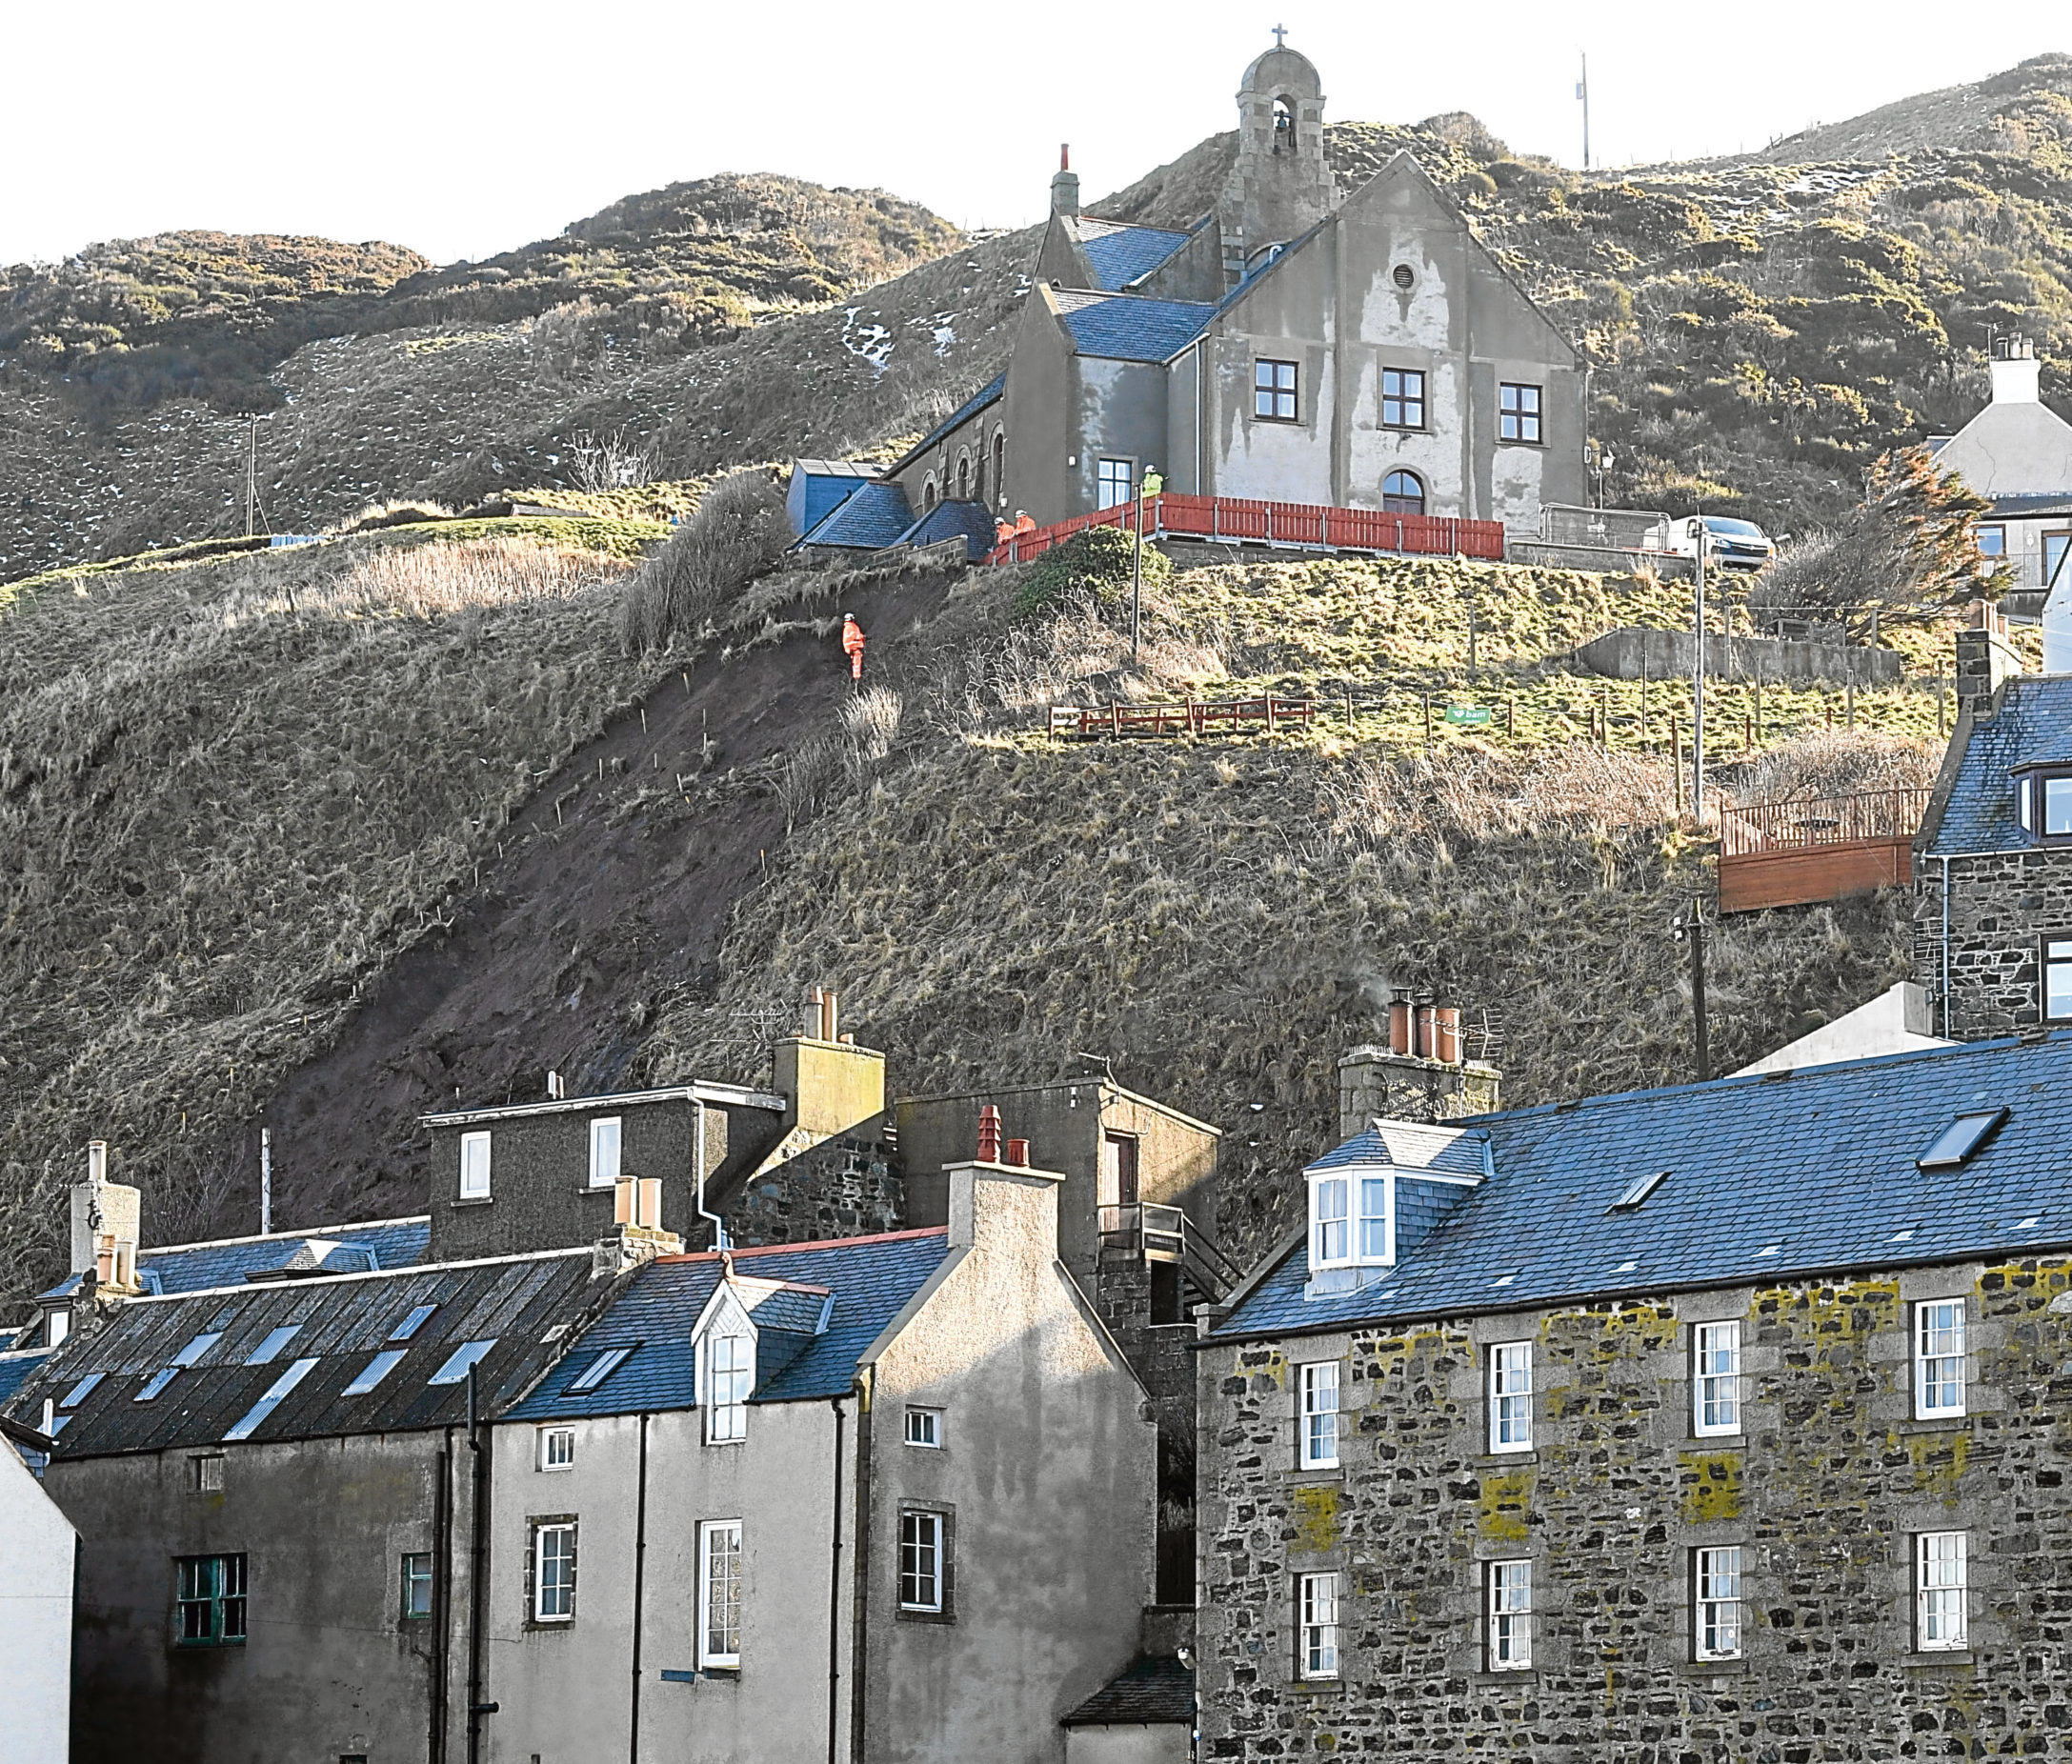 People living in the lower part of Gardenstown have been unable to access the top of the hill.